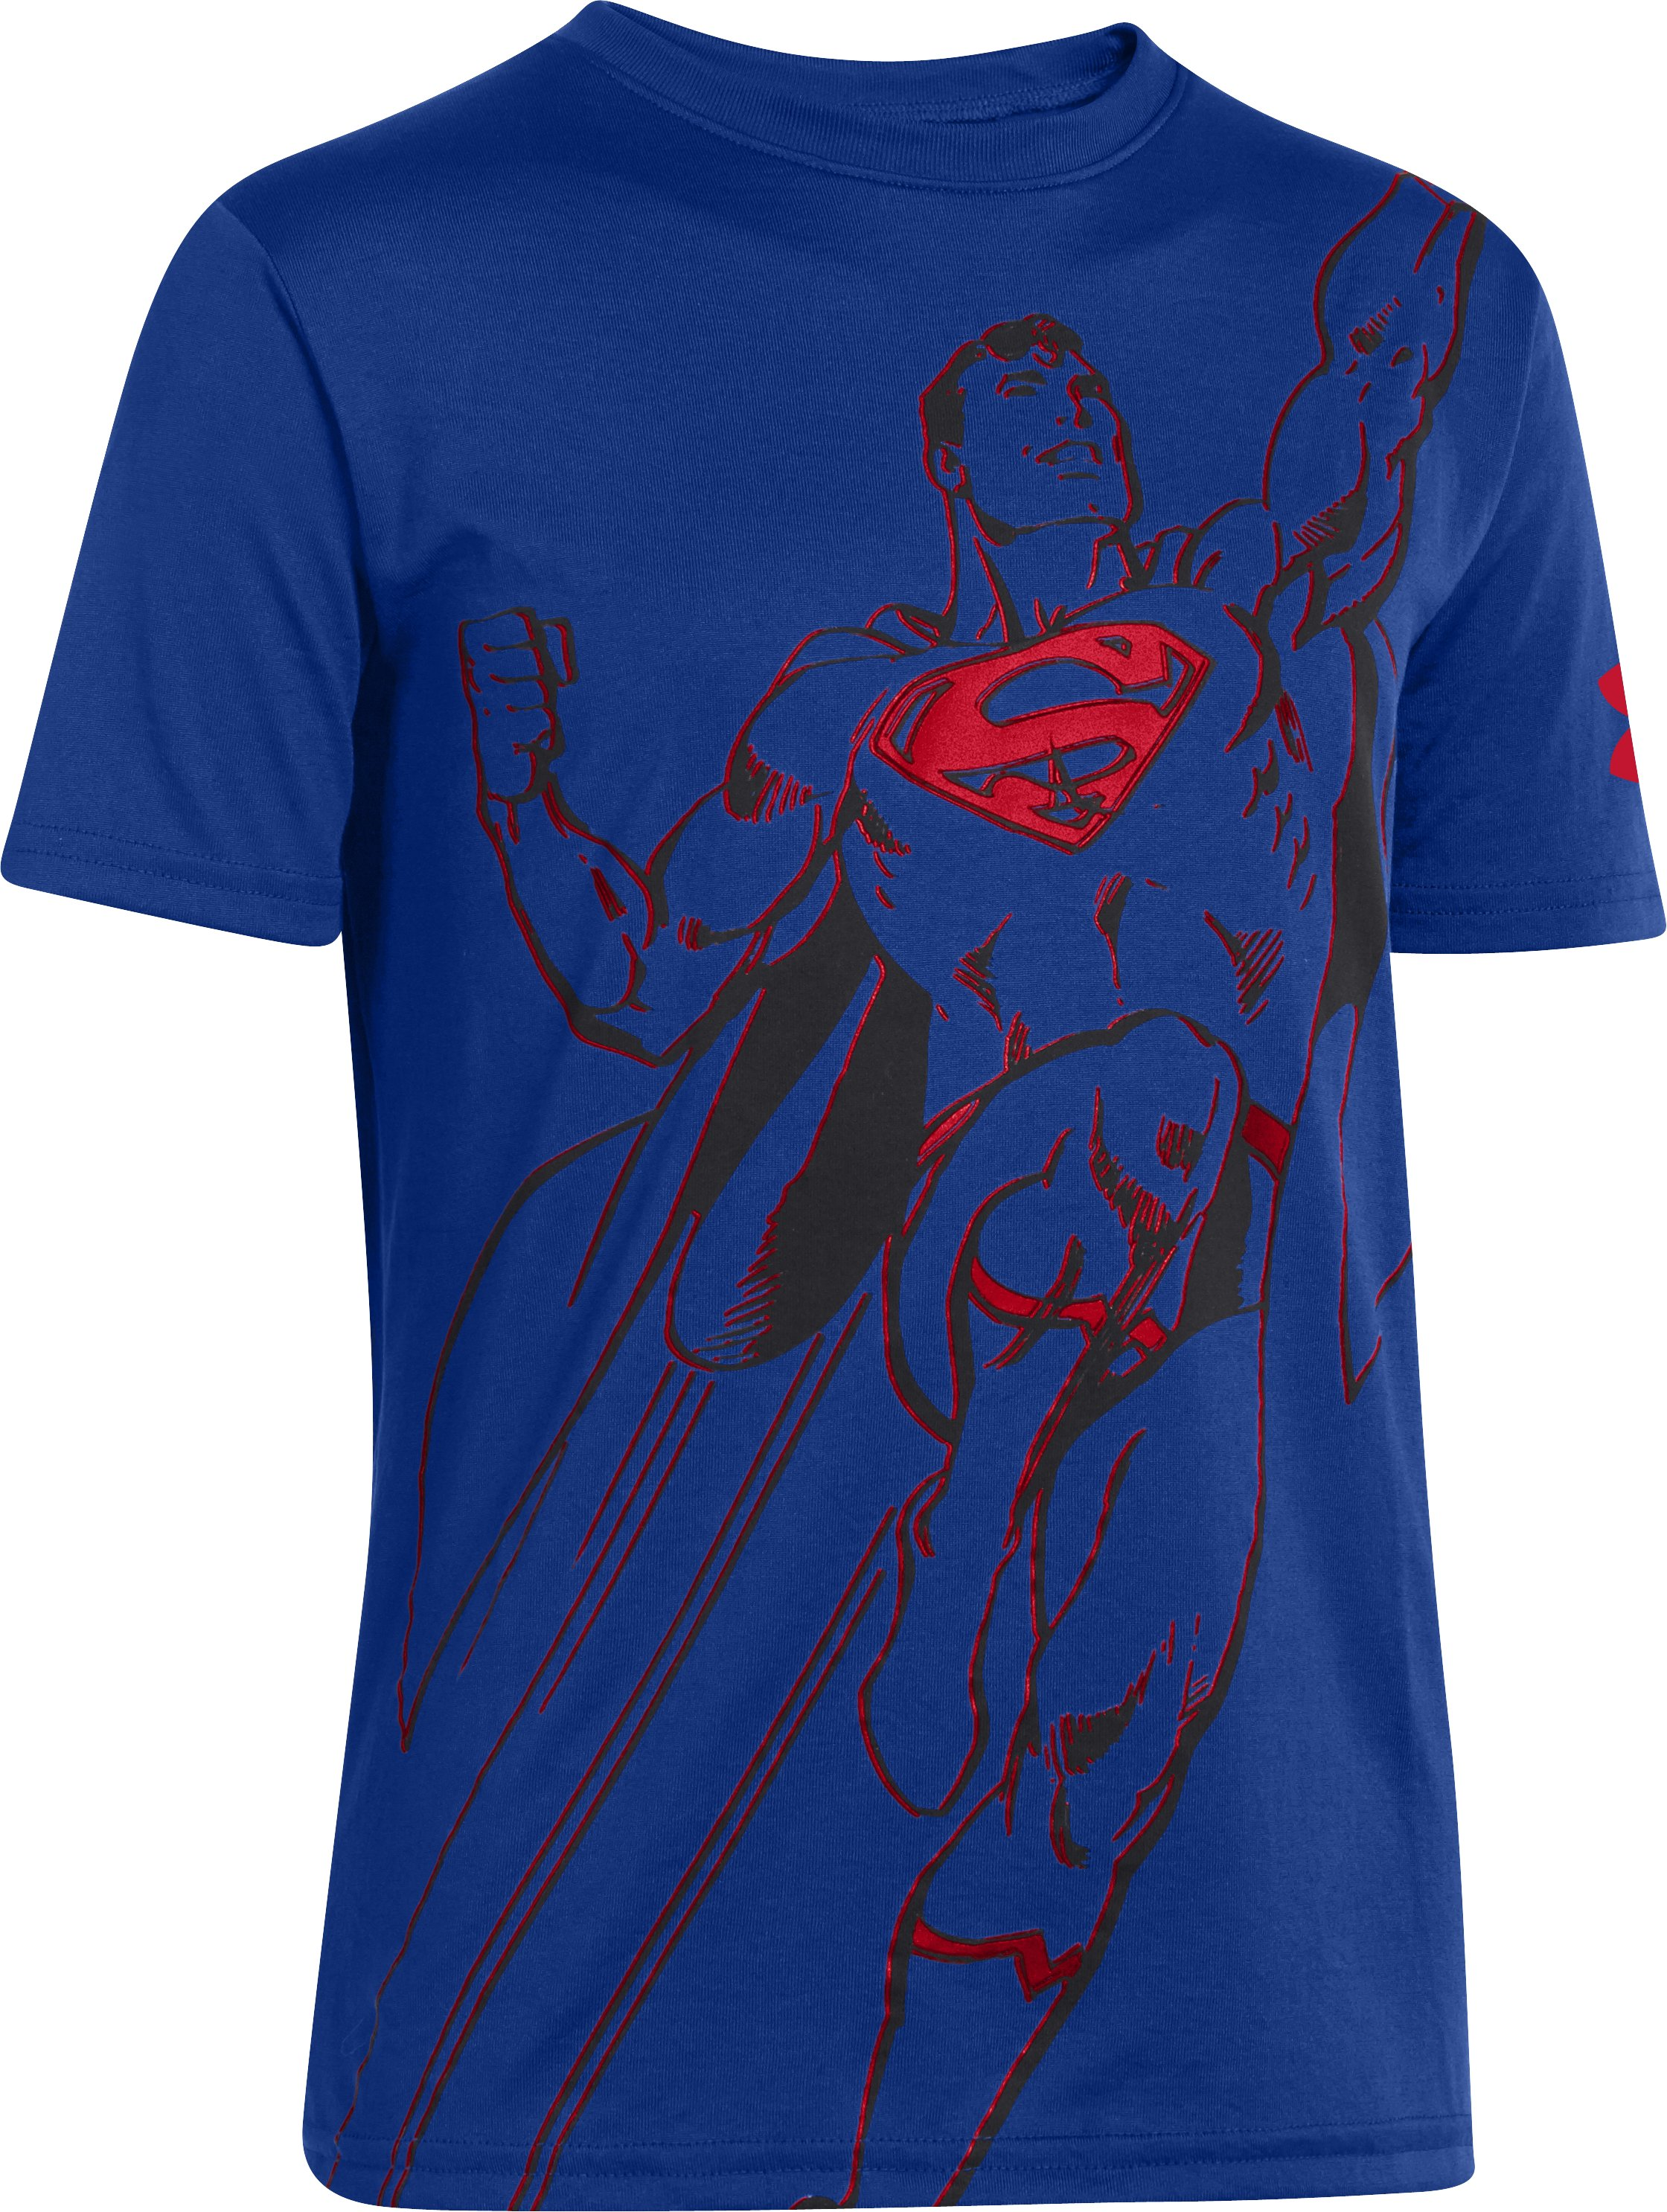 Boys' Under Armour® Alter Ego Superman Action T-Shirt, Royal, zoomed image